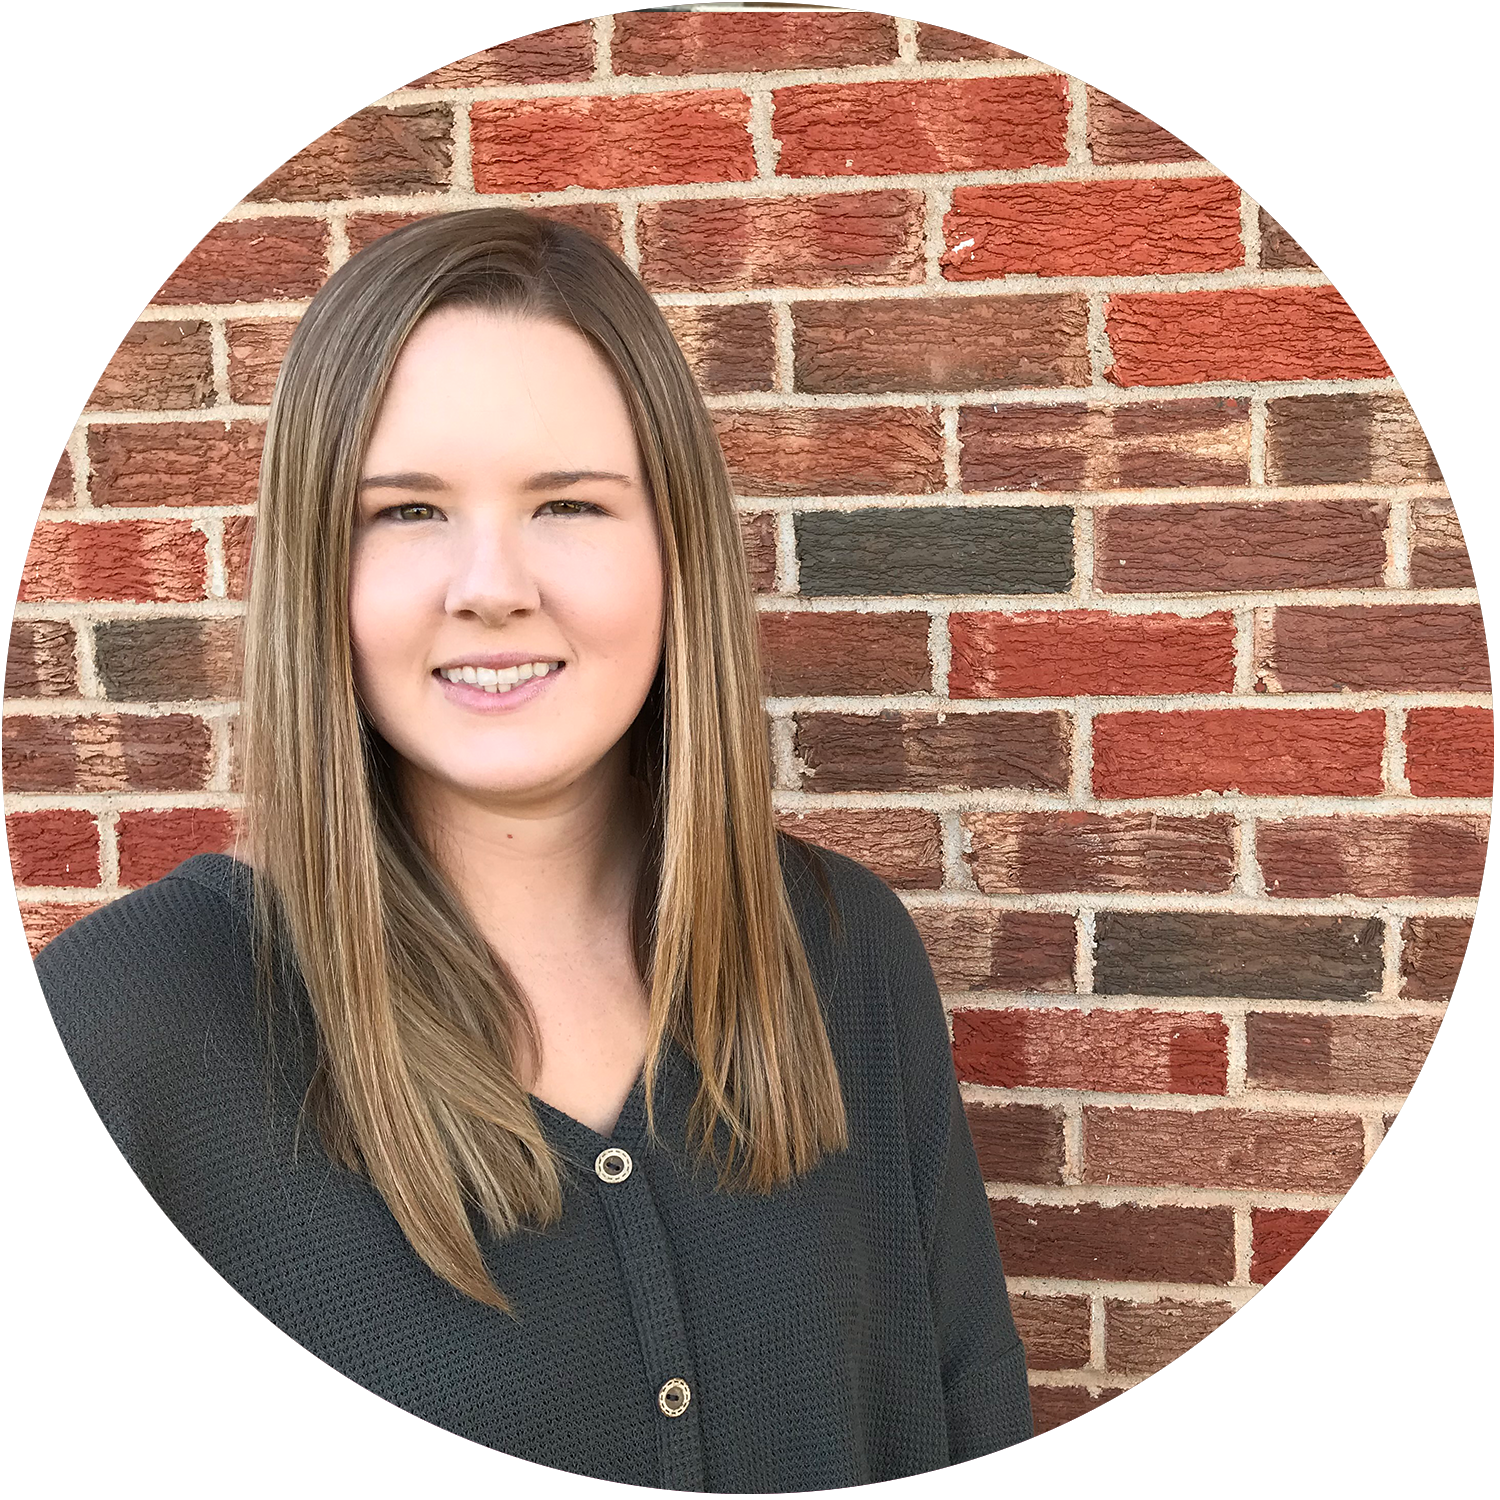 Abby Brown   Part-time marketing person. Loves traveling, music, and being creative. Student at University of Central Oklahoma.   Stroud Office    abrown@carpenteragency.com